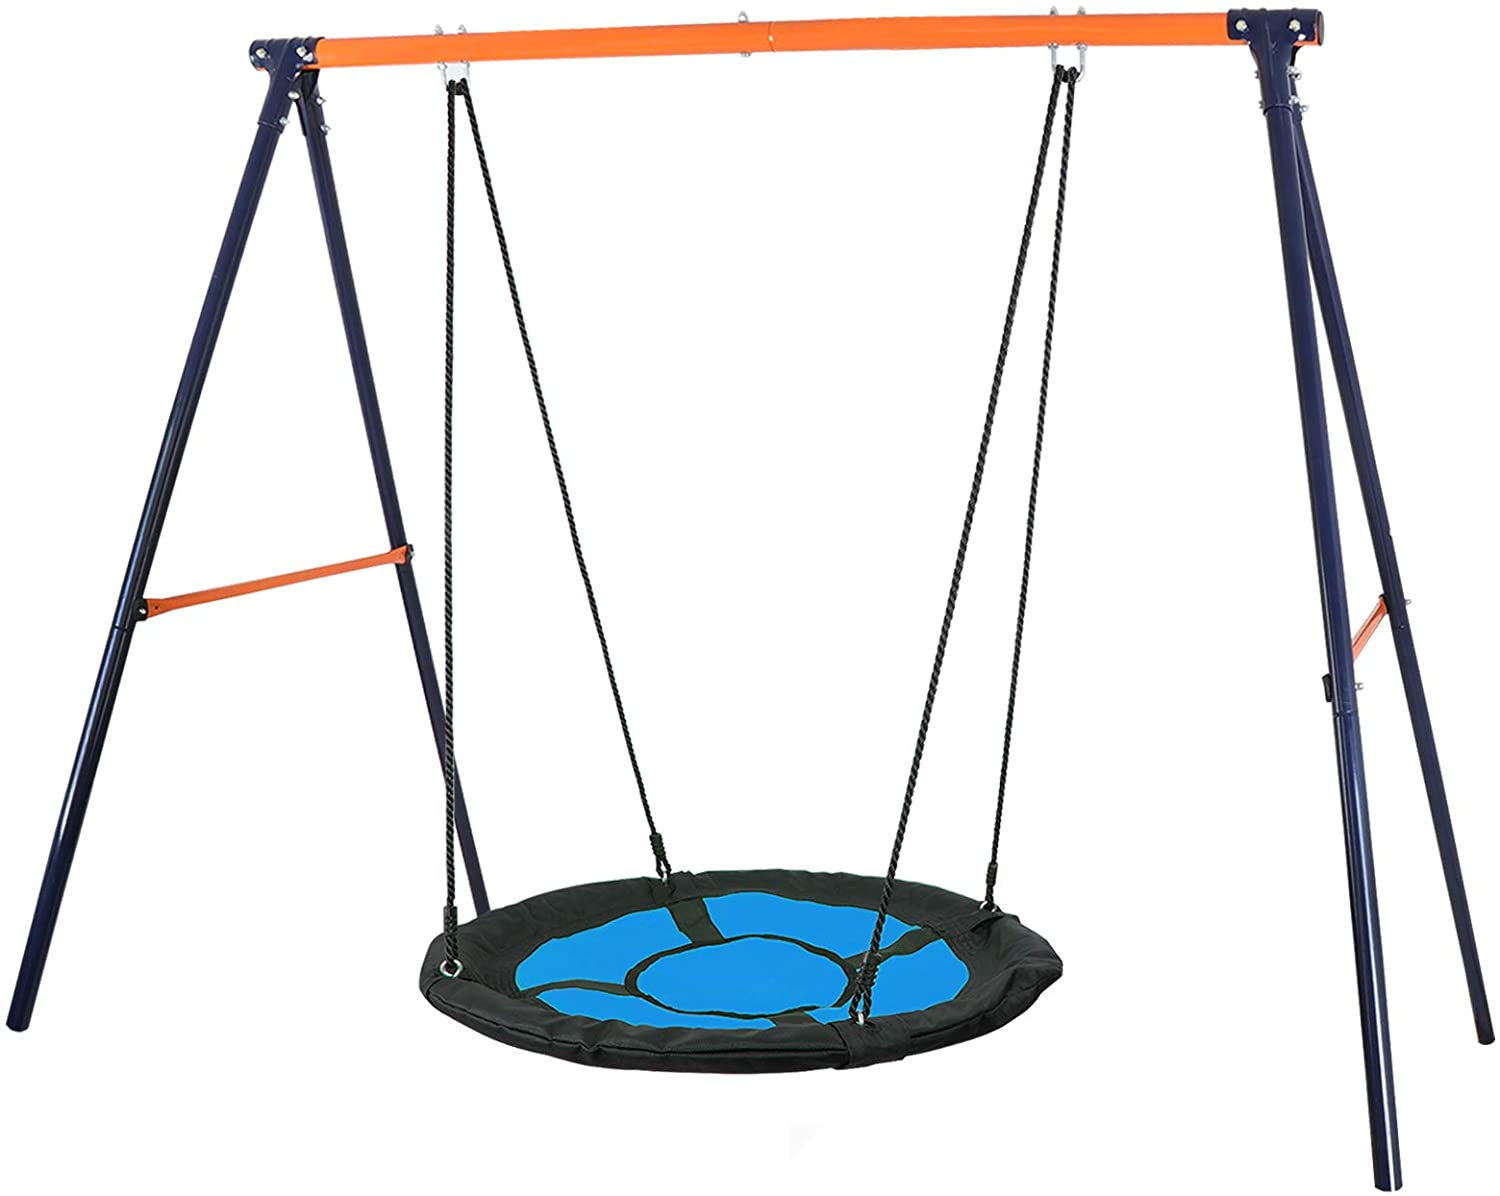 Review of SUPER DEAL Tree Swing Saucer 72